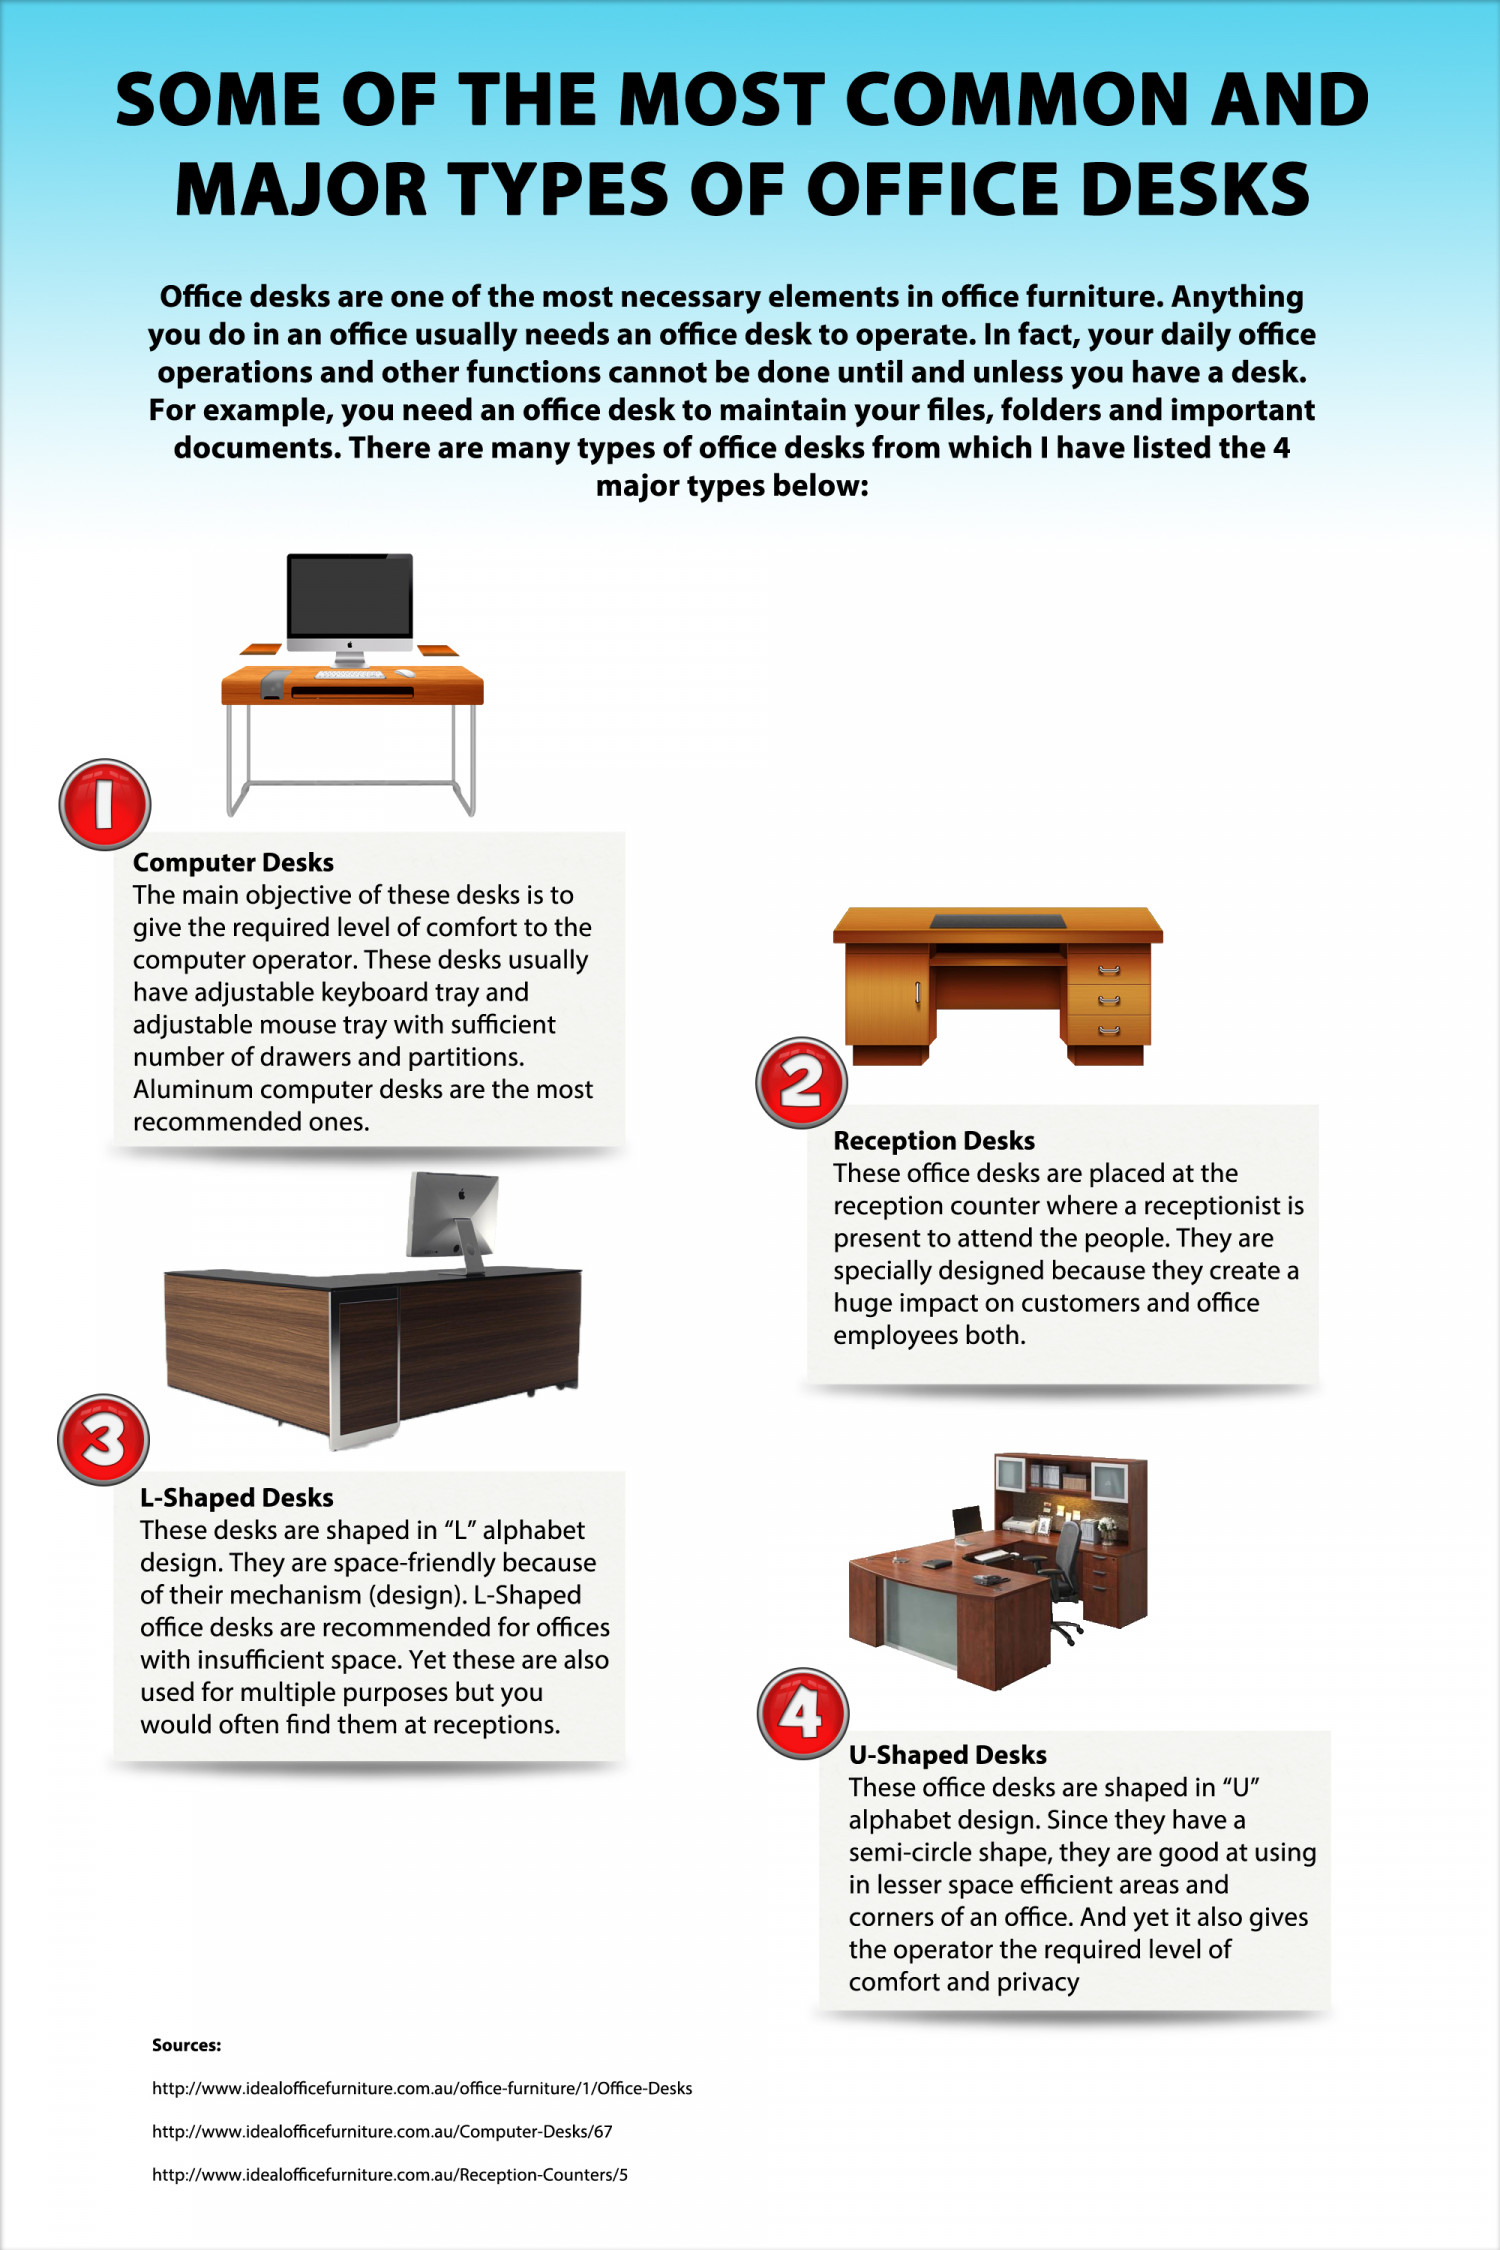 Some Of The Most Common And Major Types Office Desks Infographic